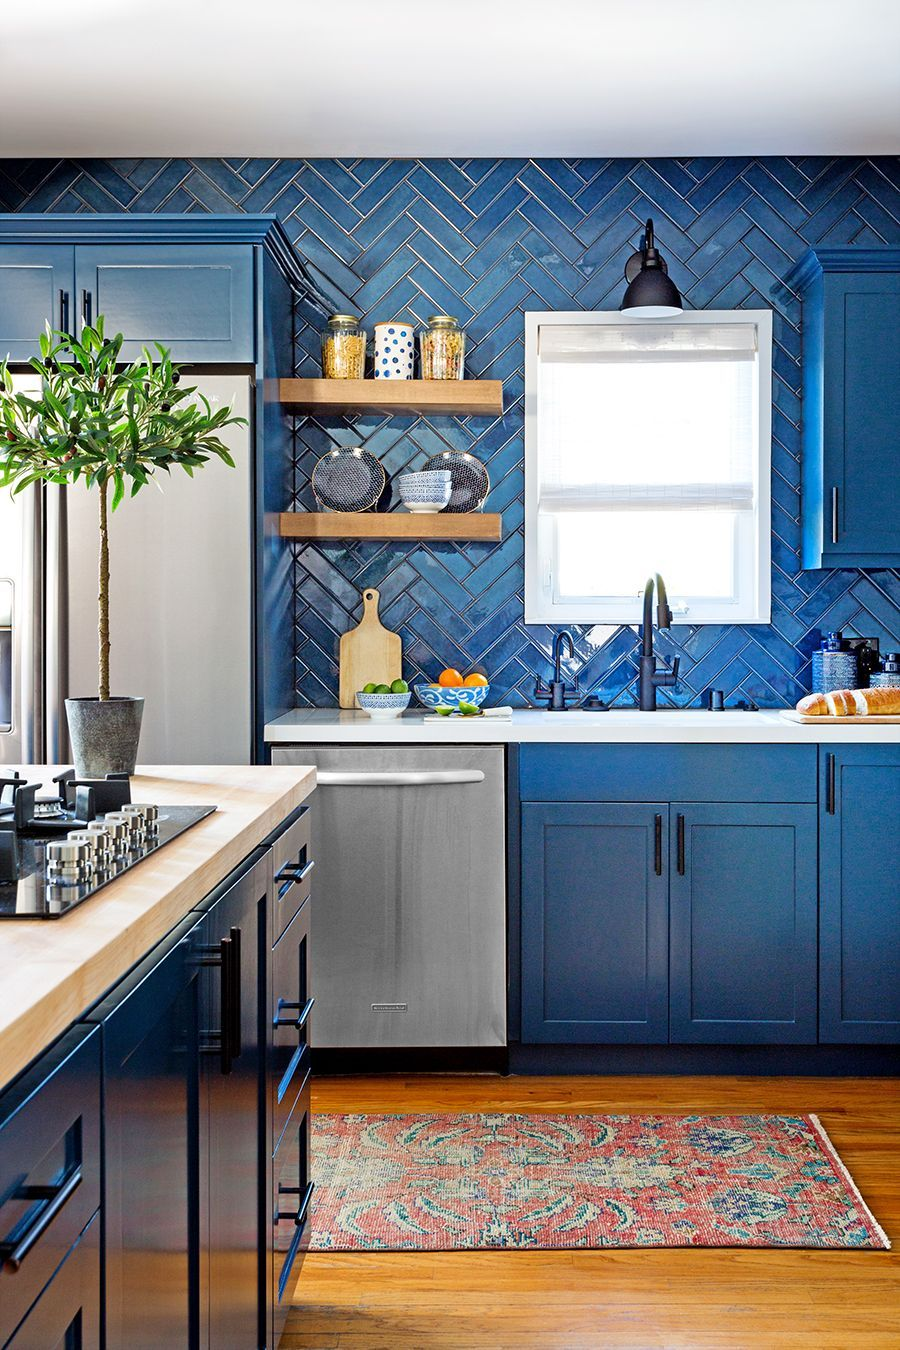 You Ll Want To Recreate These Creative Subway Tile Ideas In Your